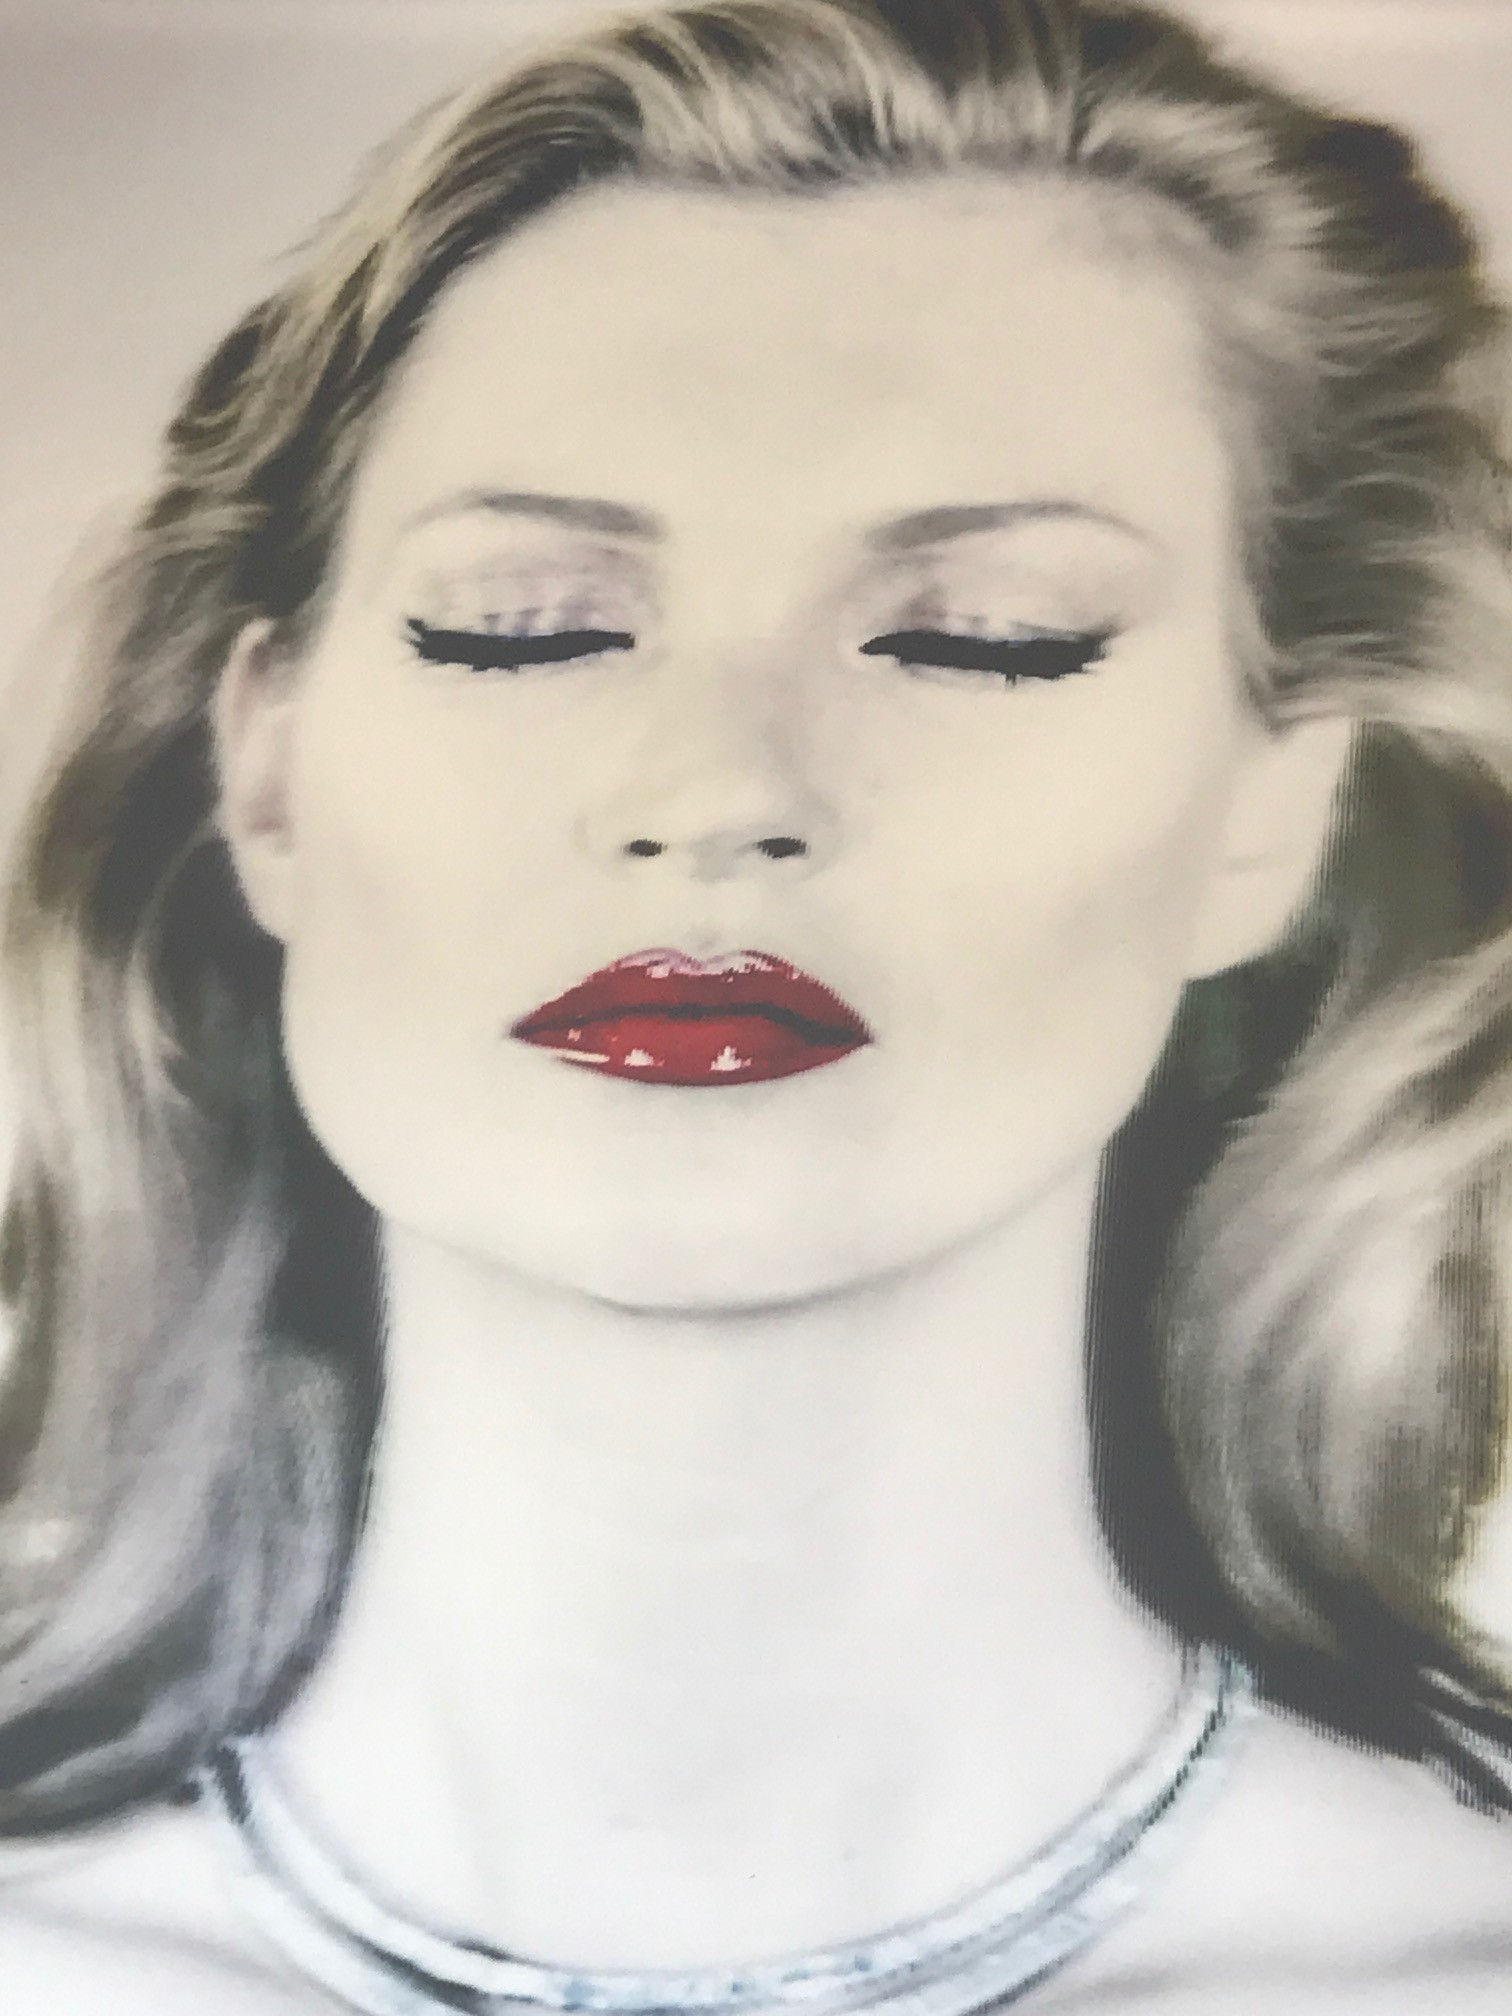 In Chris Levine's She's Light (Pure) Kate Moss' emblamatic status and iconic features are heightened by the bold colours that contrast with the delicate paleness of her skin.